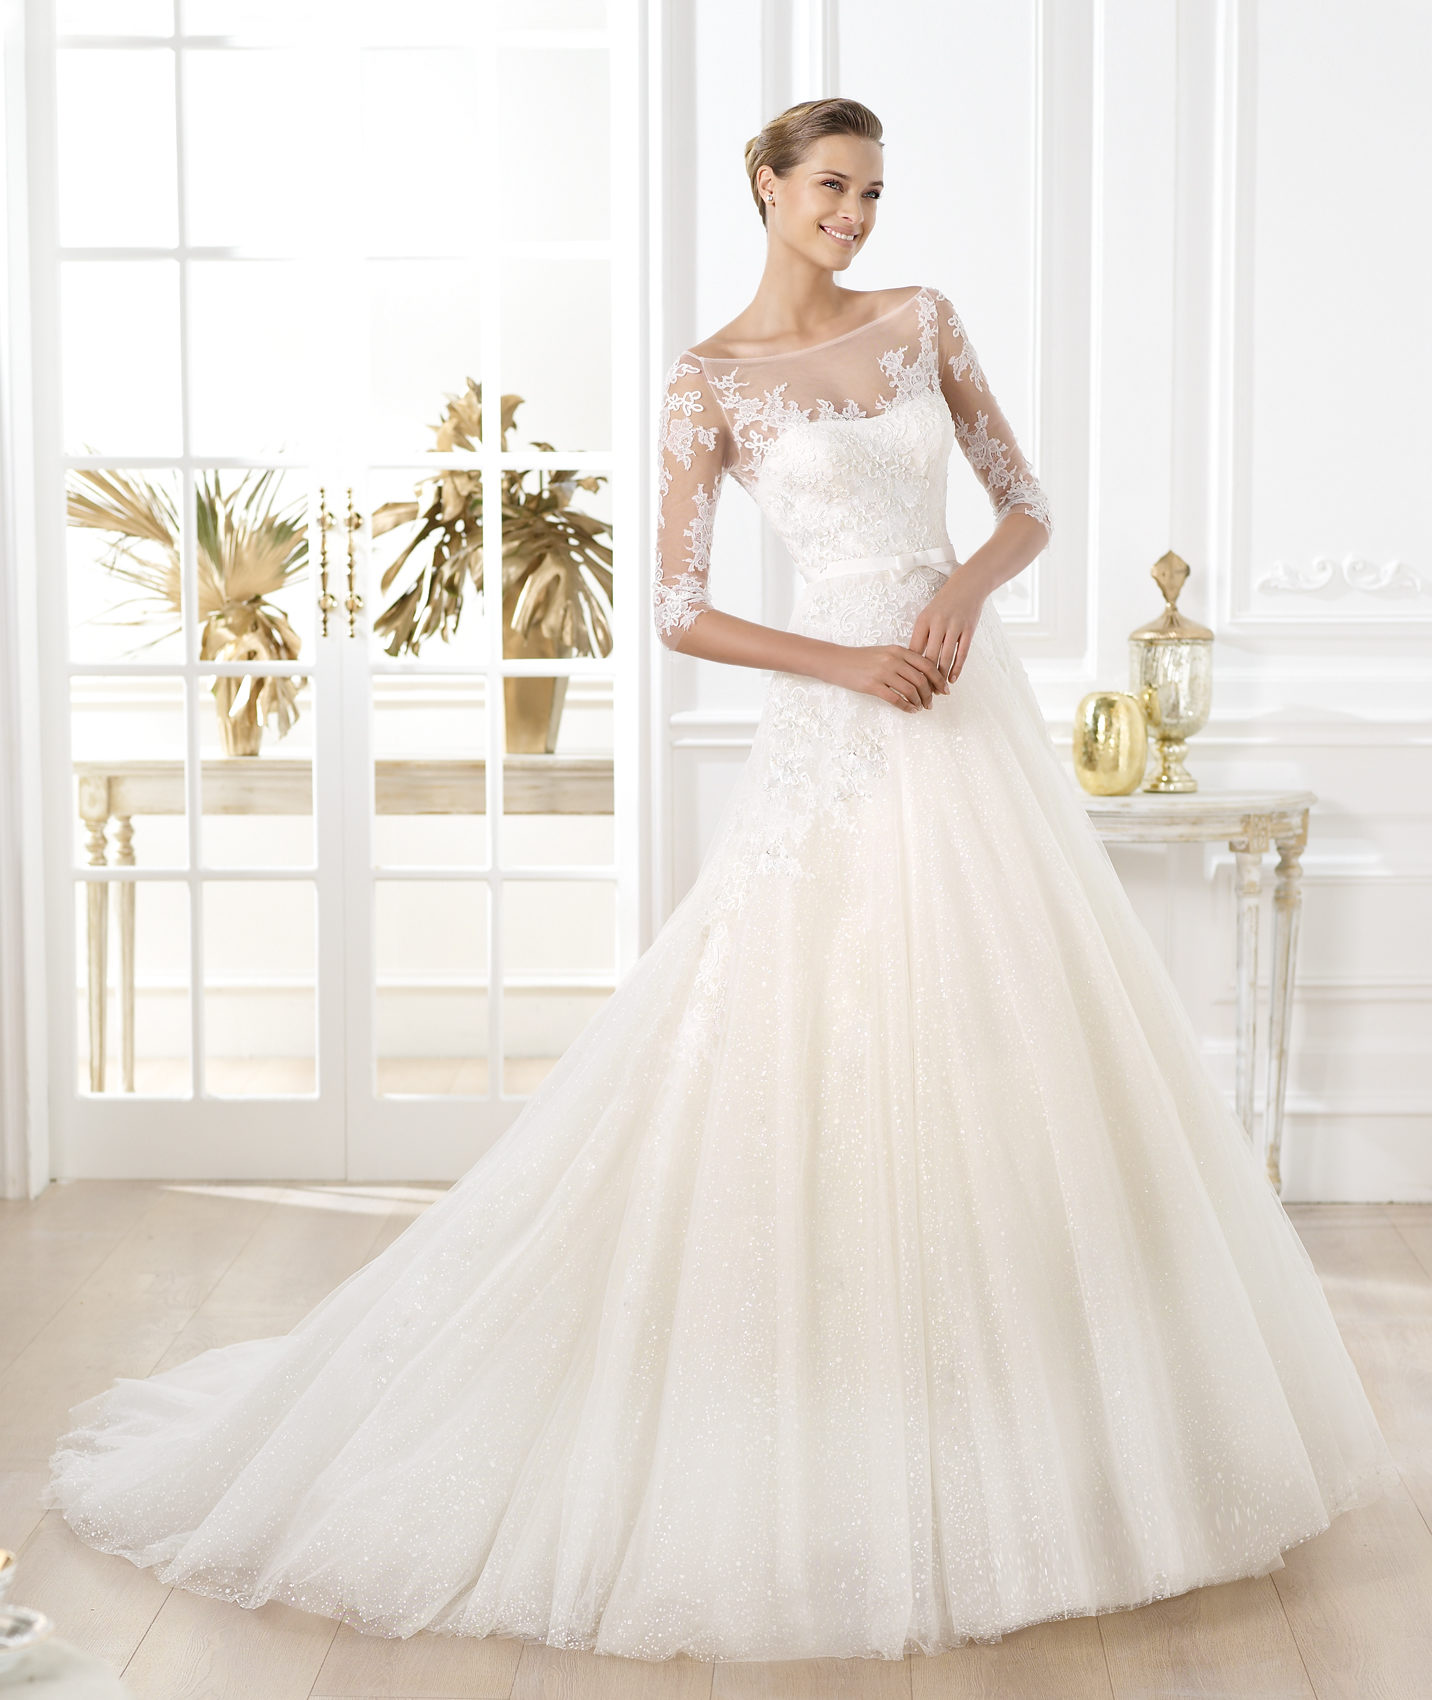 Pronovias Wedding Dress 2014 – images free download